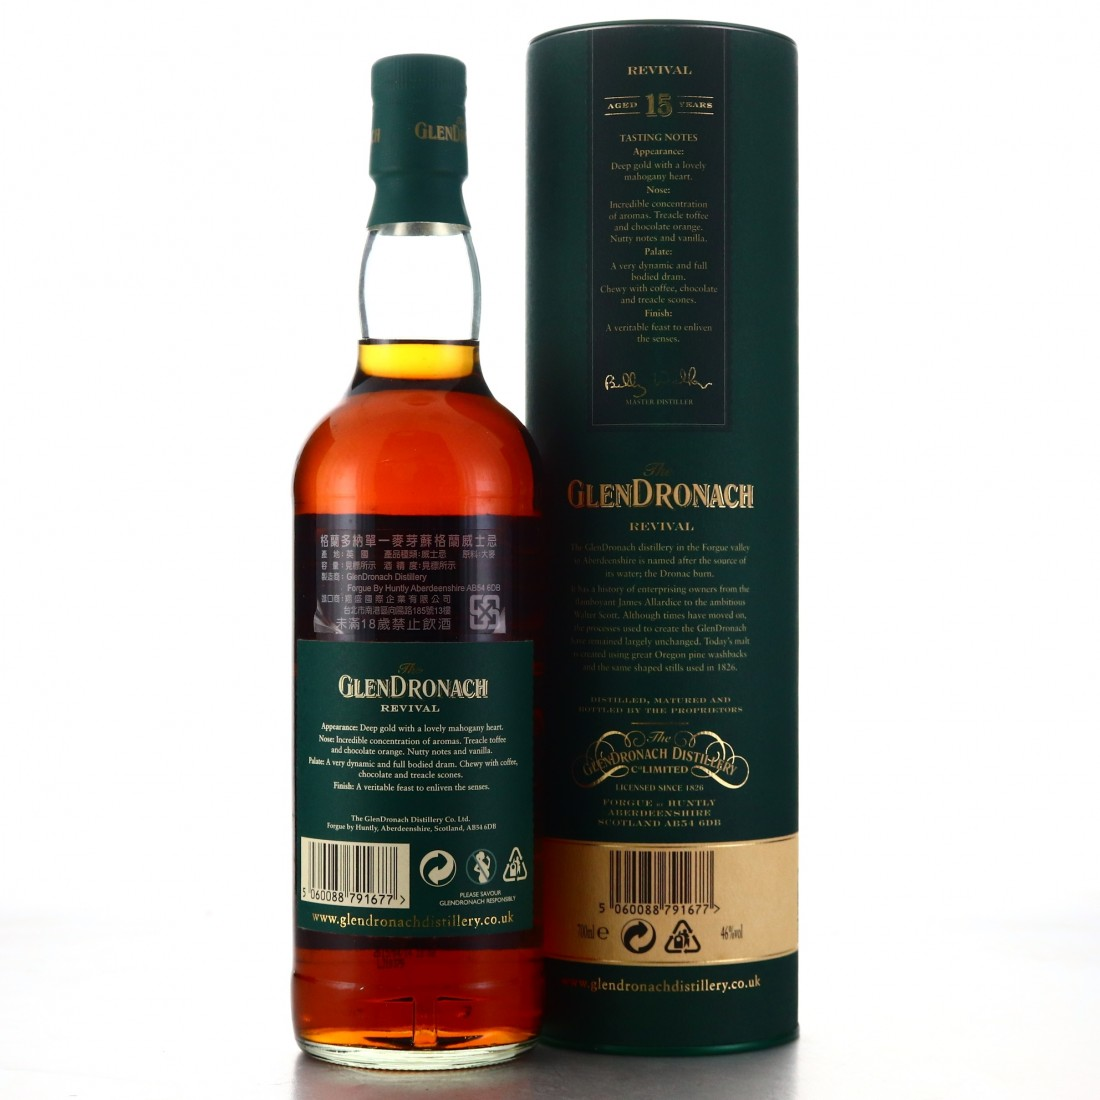 Glendronach 15 Year Old Revival pre-2015